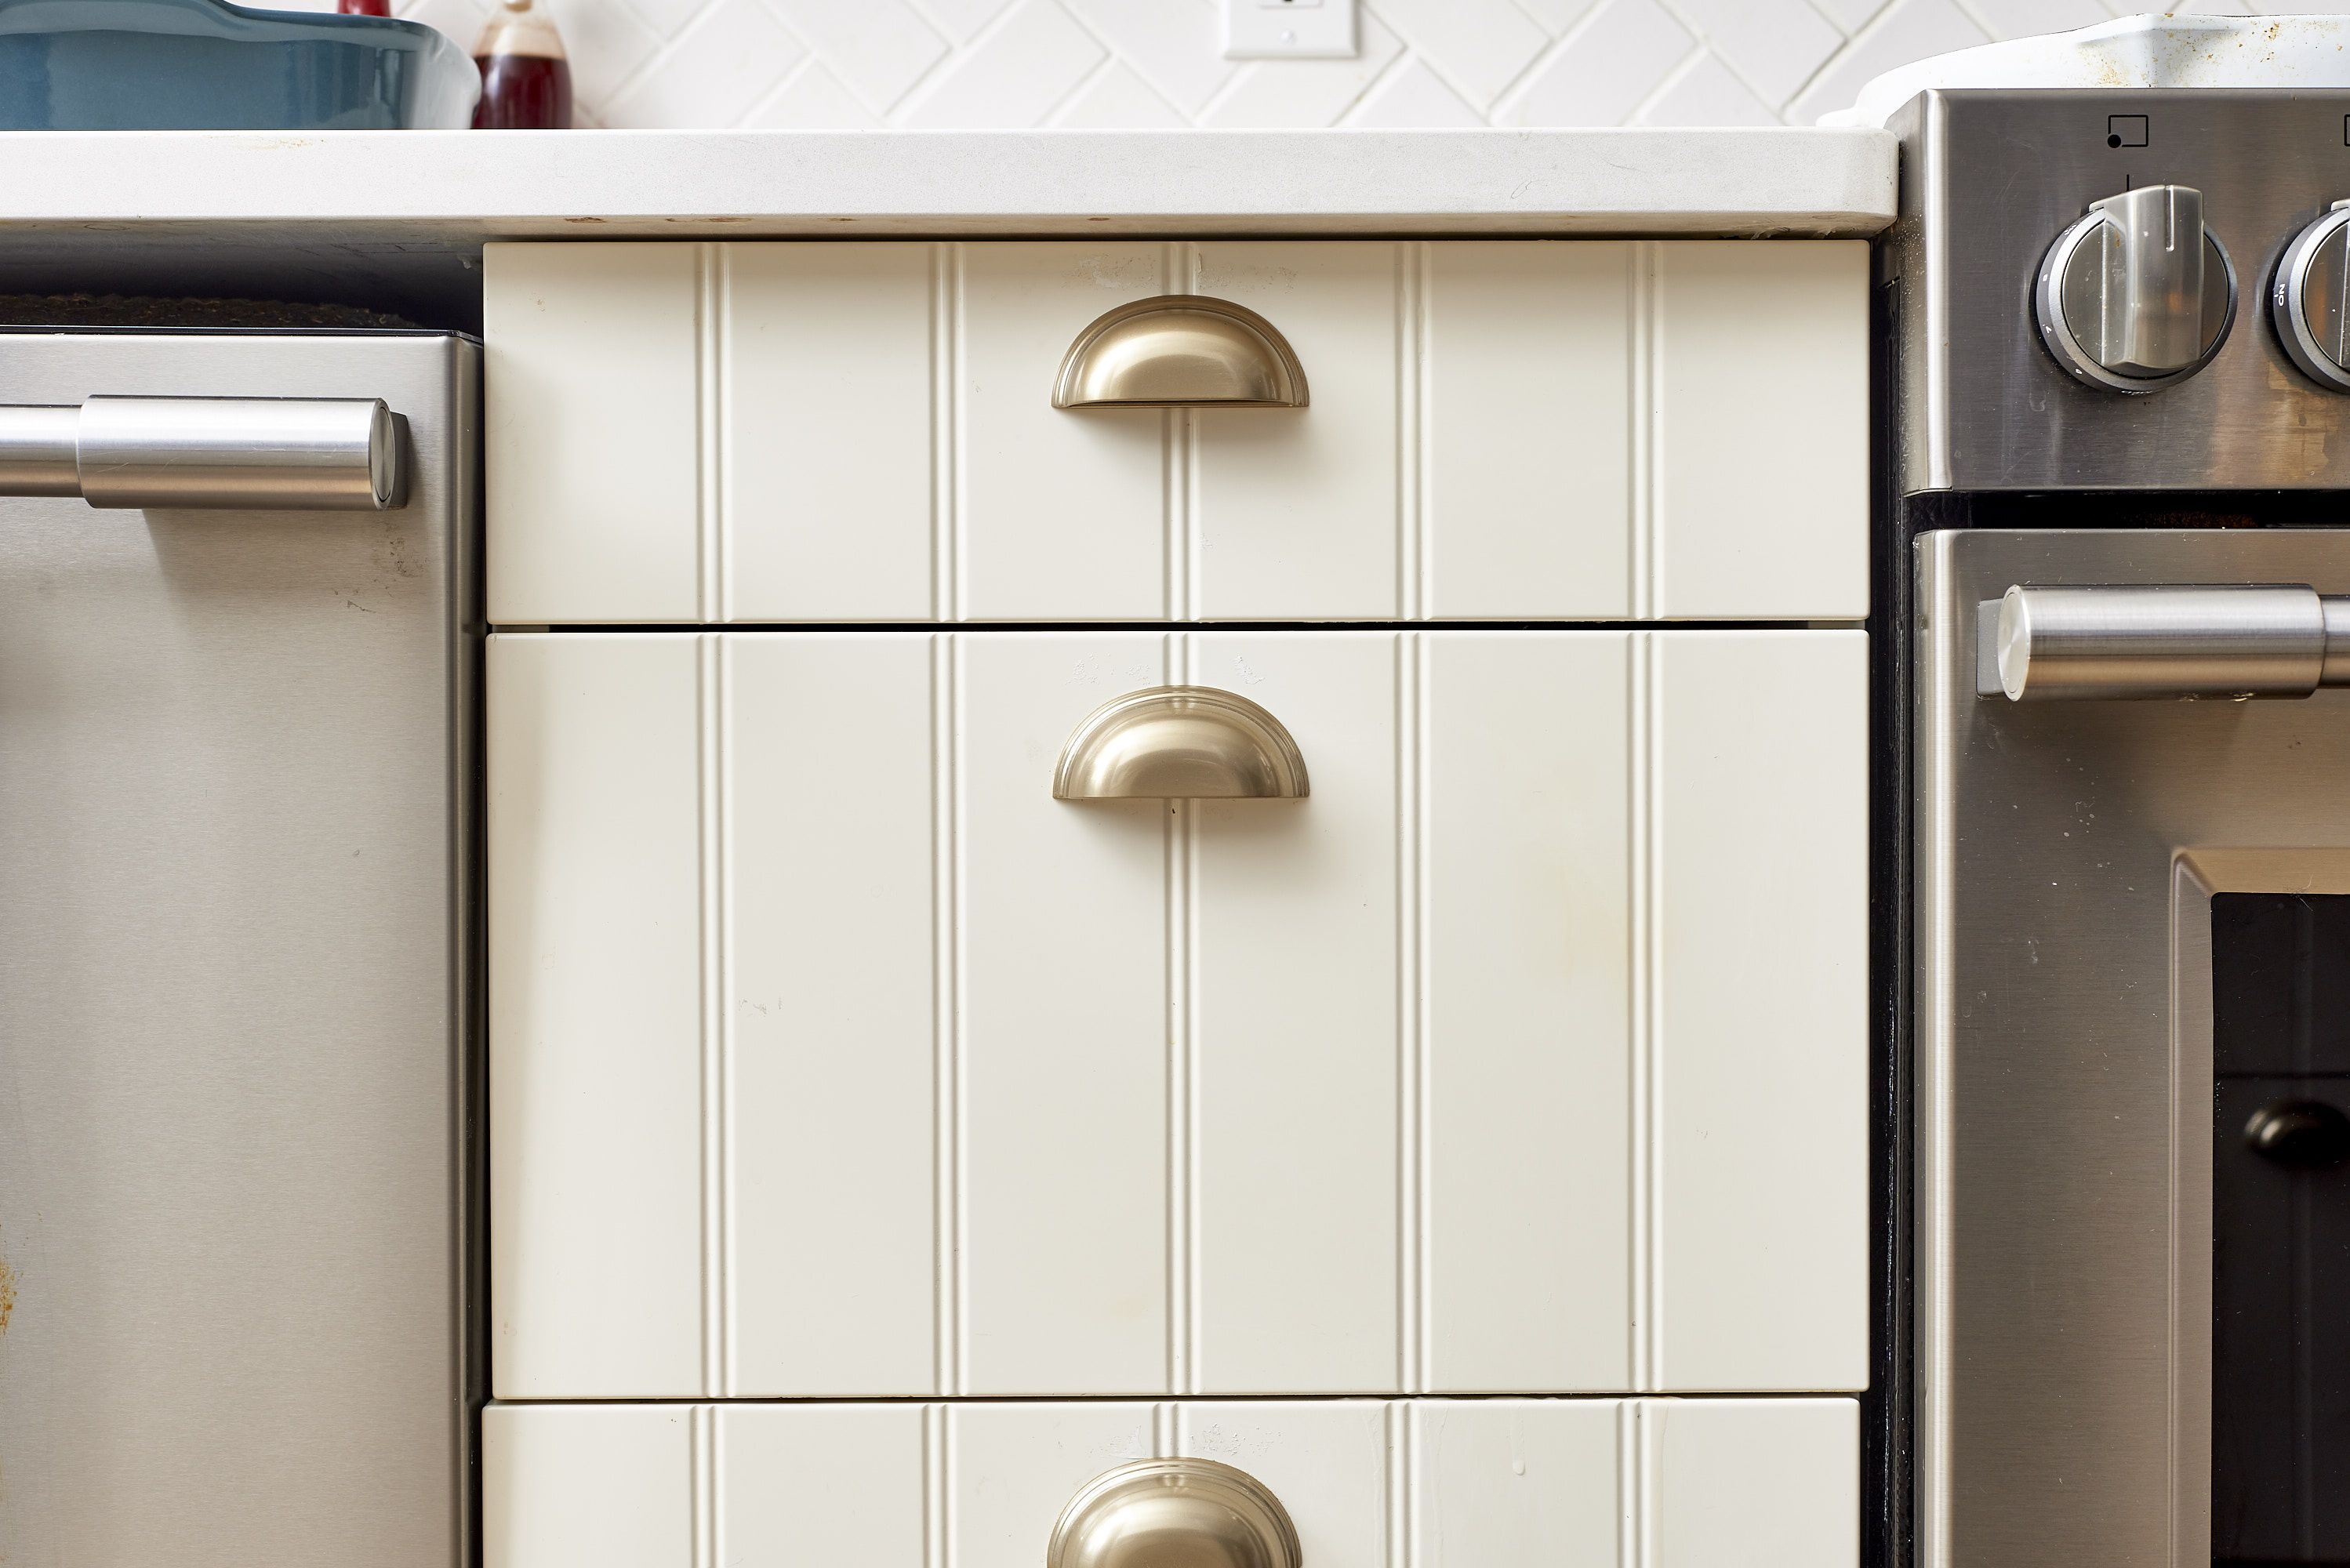 How To Get Sticky Cooking Grease f Cabinet Doors